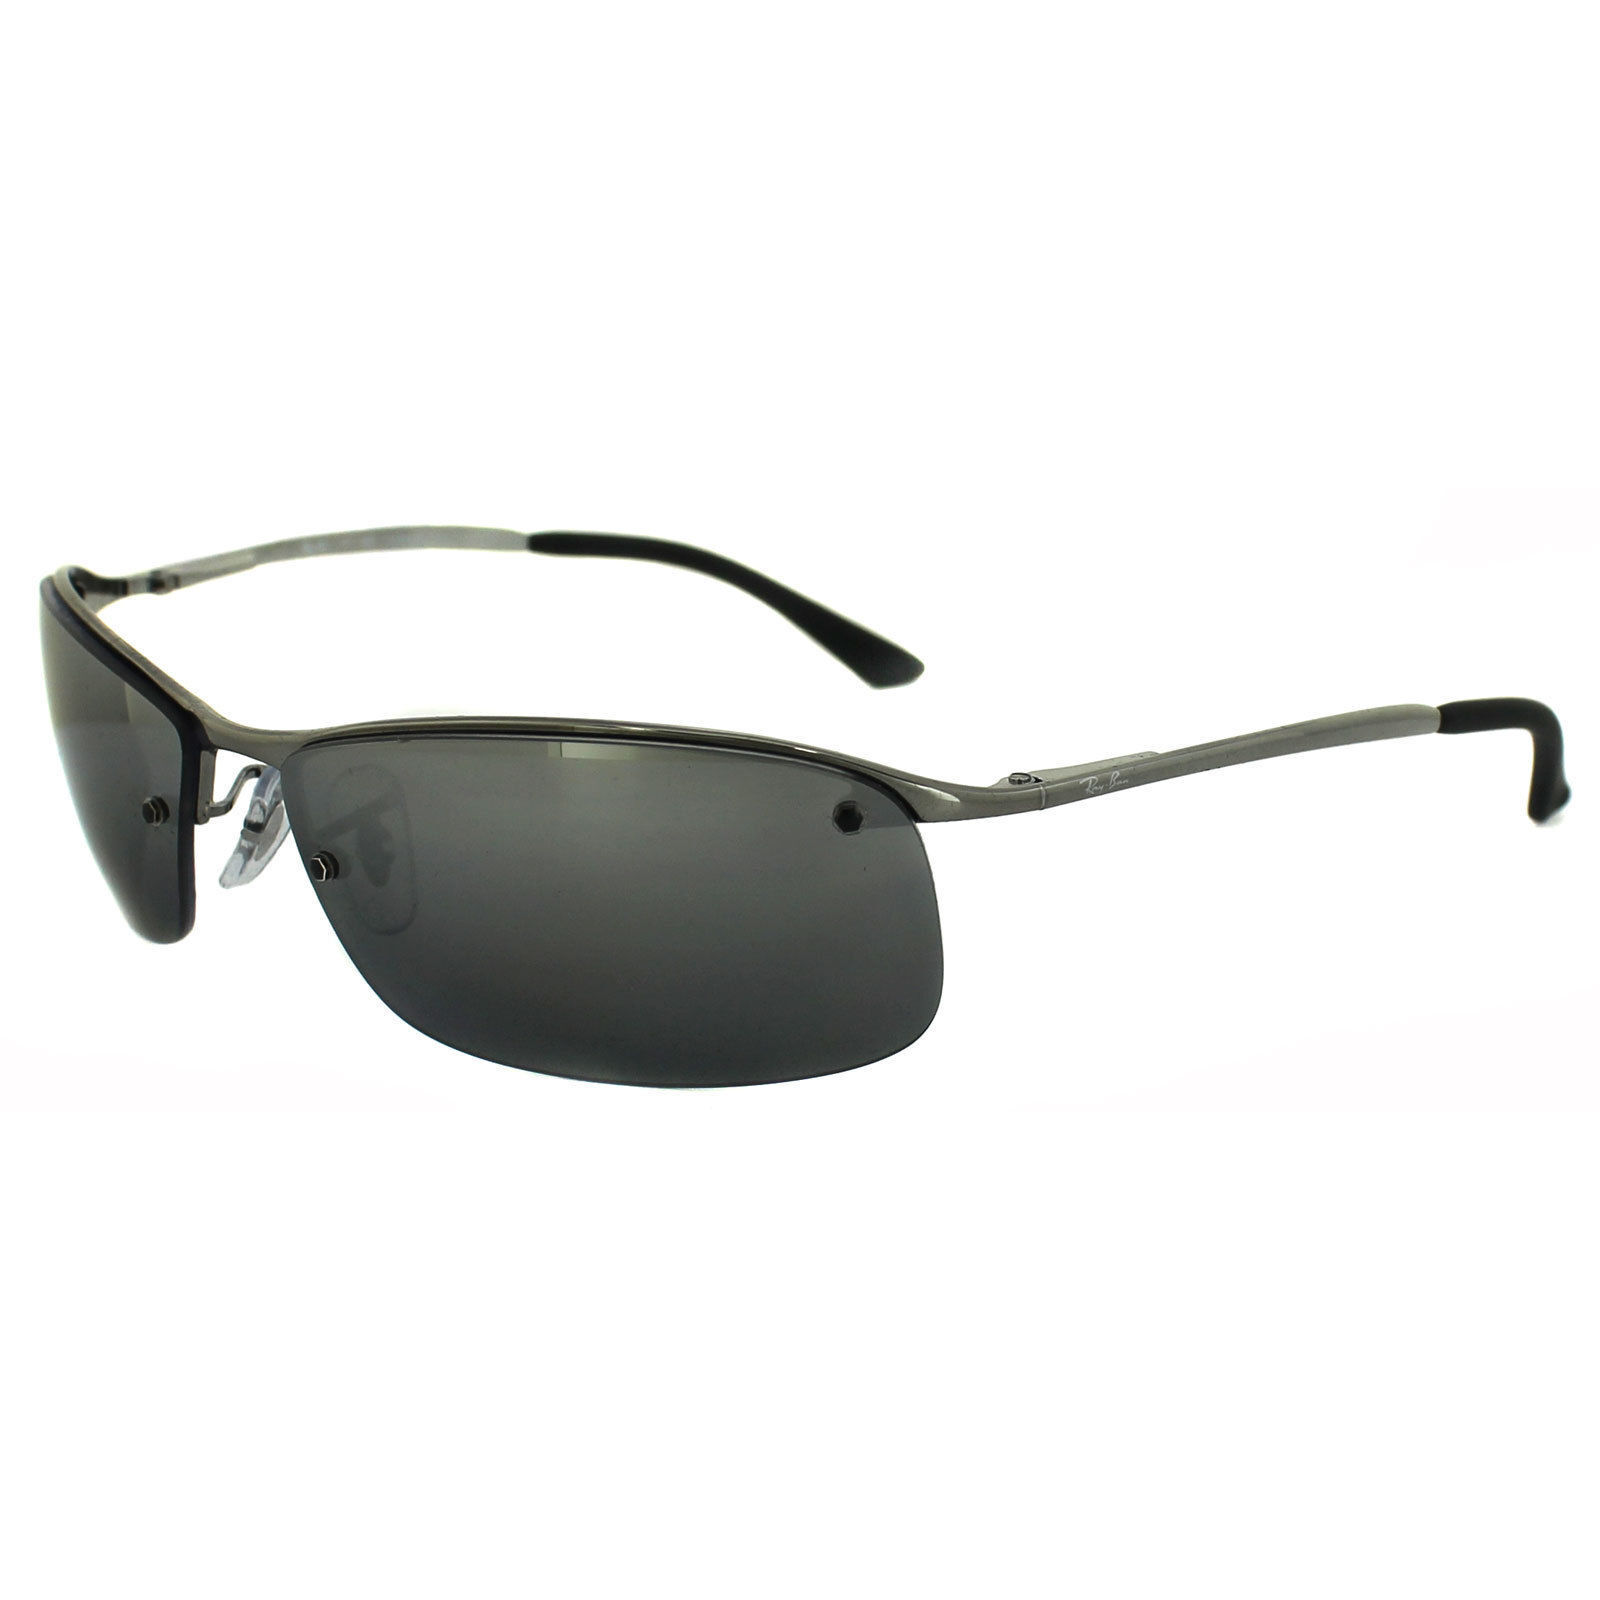 c87ef91fdfe Ray Ban RB3183 004 82 Men s Sunglasses for sale online